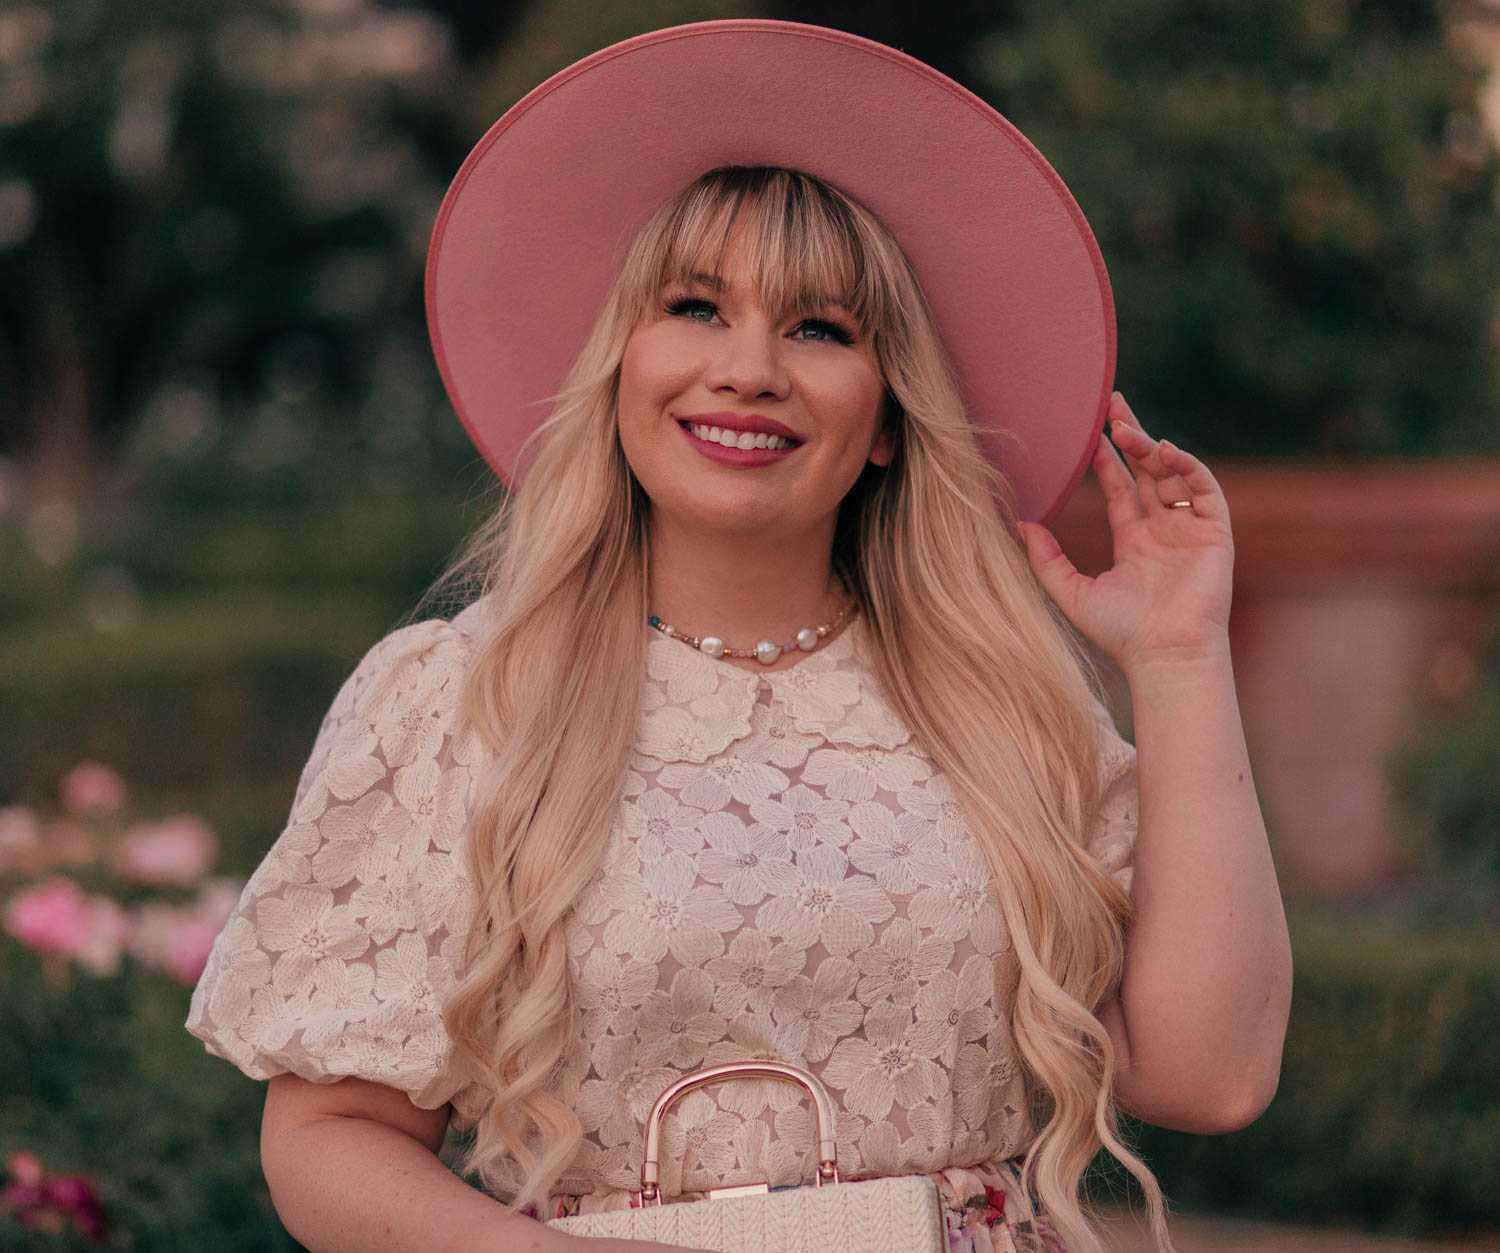 Feminine Fashion Blogger Elizabeth Hugen of Lizzie in Lace shares her top 5 Feminine Summer Essentials for the Girly Girl including a Sequin Jewelry Pearl Choker